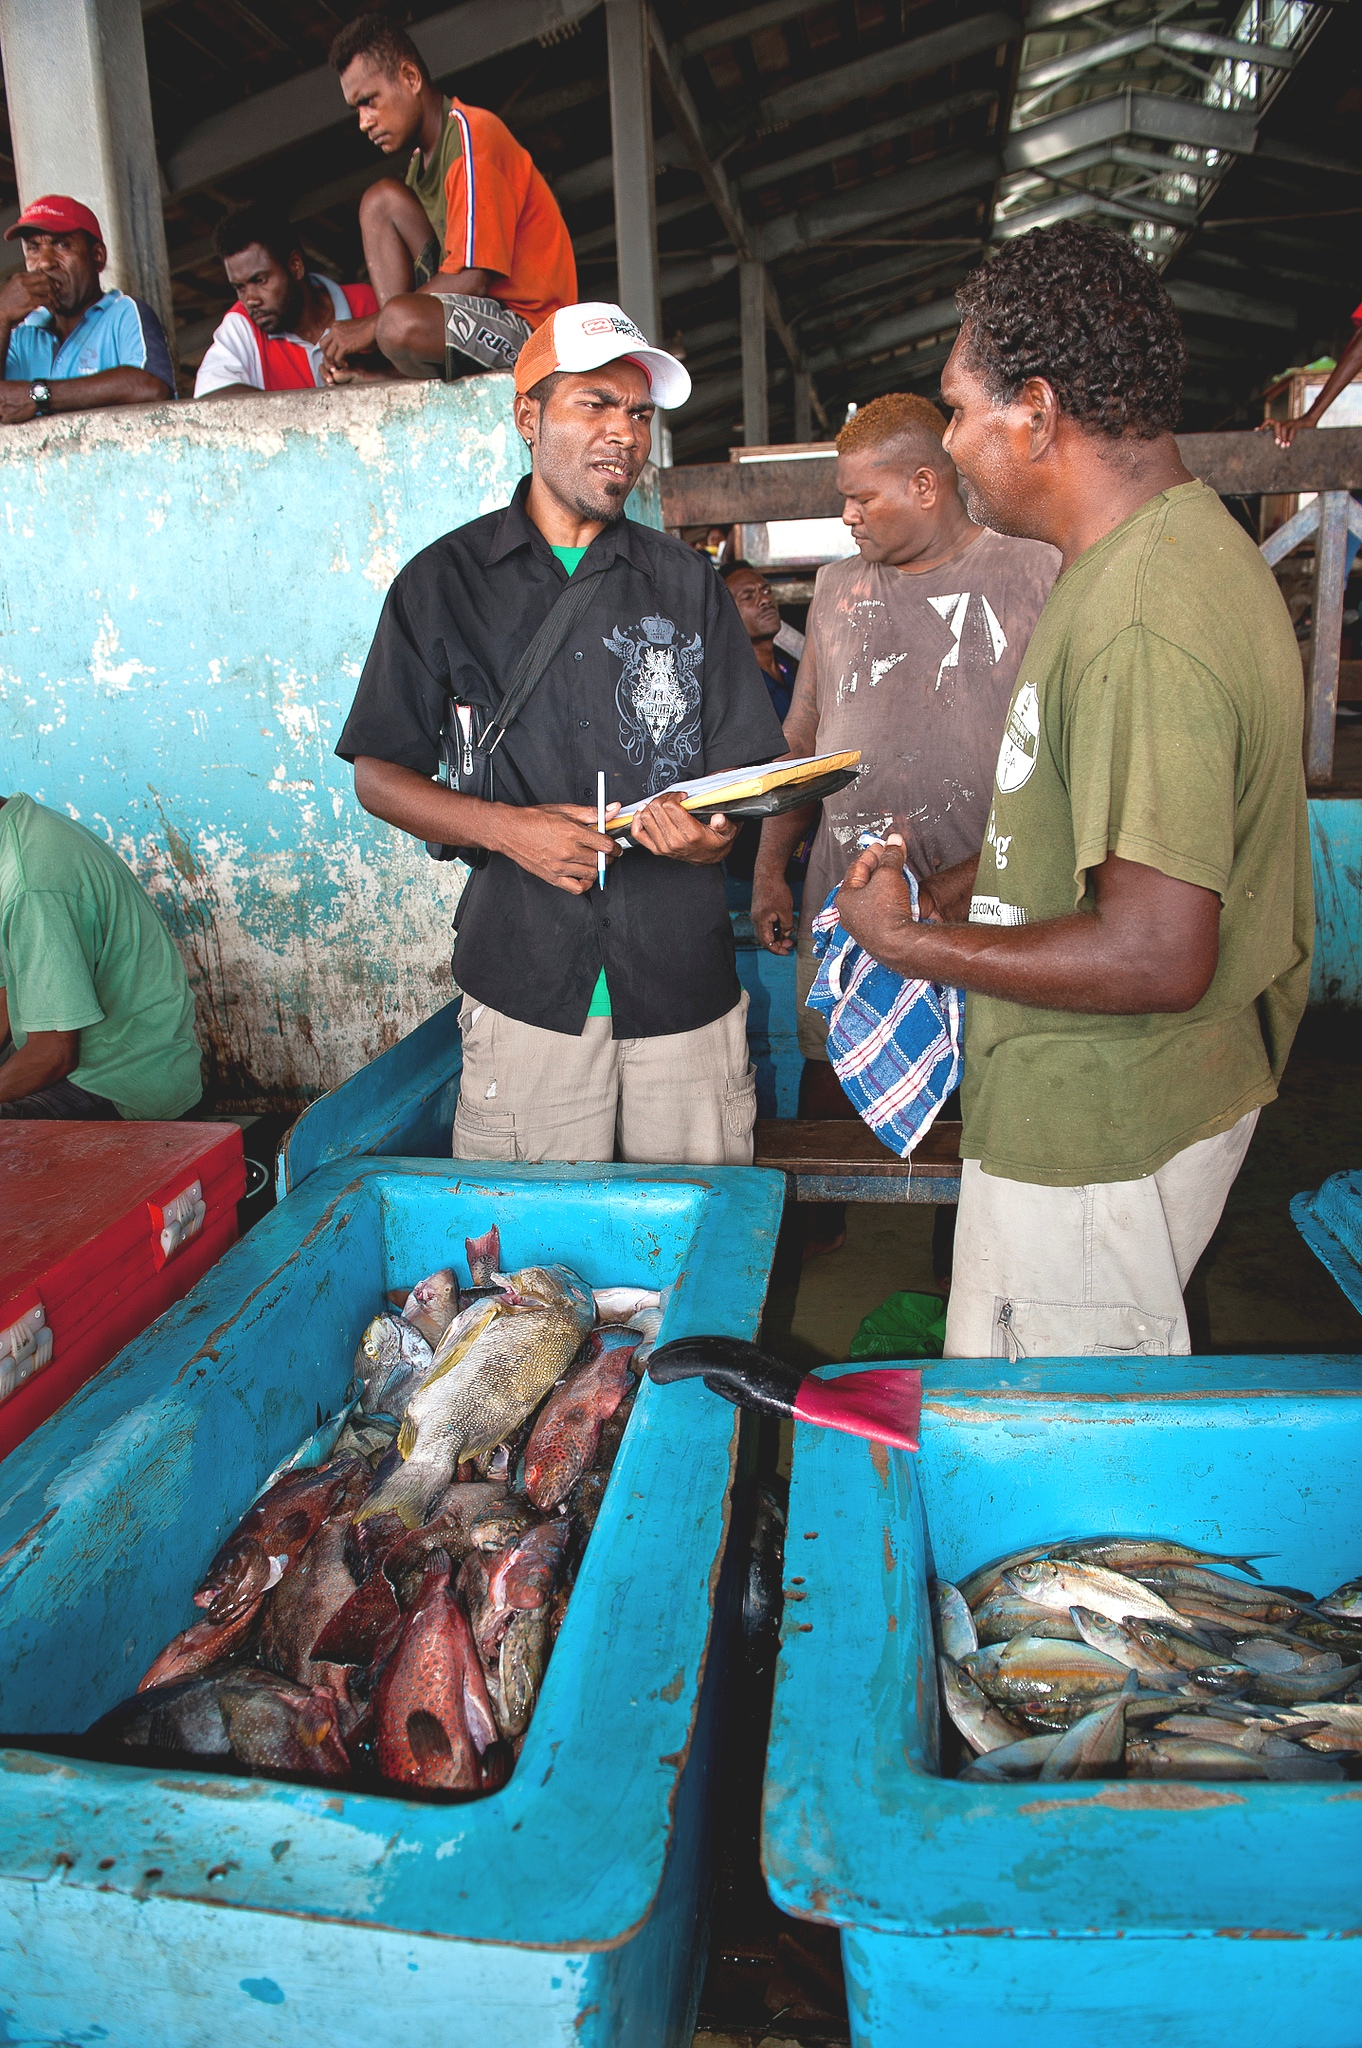 Patrick Ketete, surveyor for the Ministry of Fisheries, interviews a vendor at the Honiara main market.